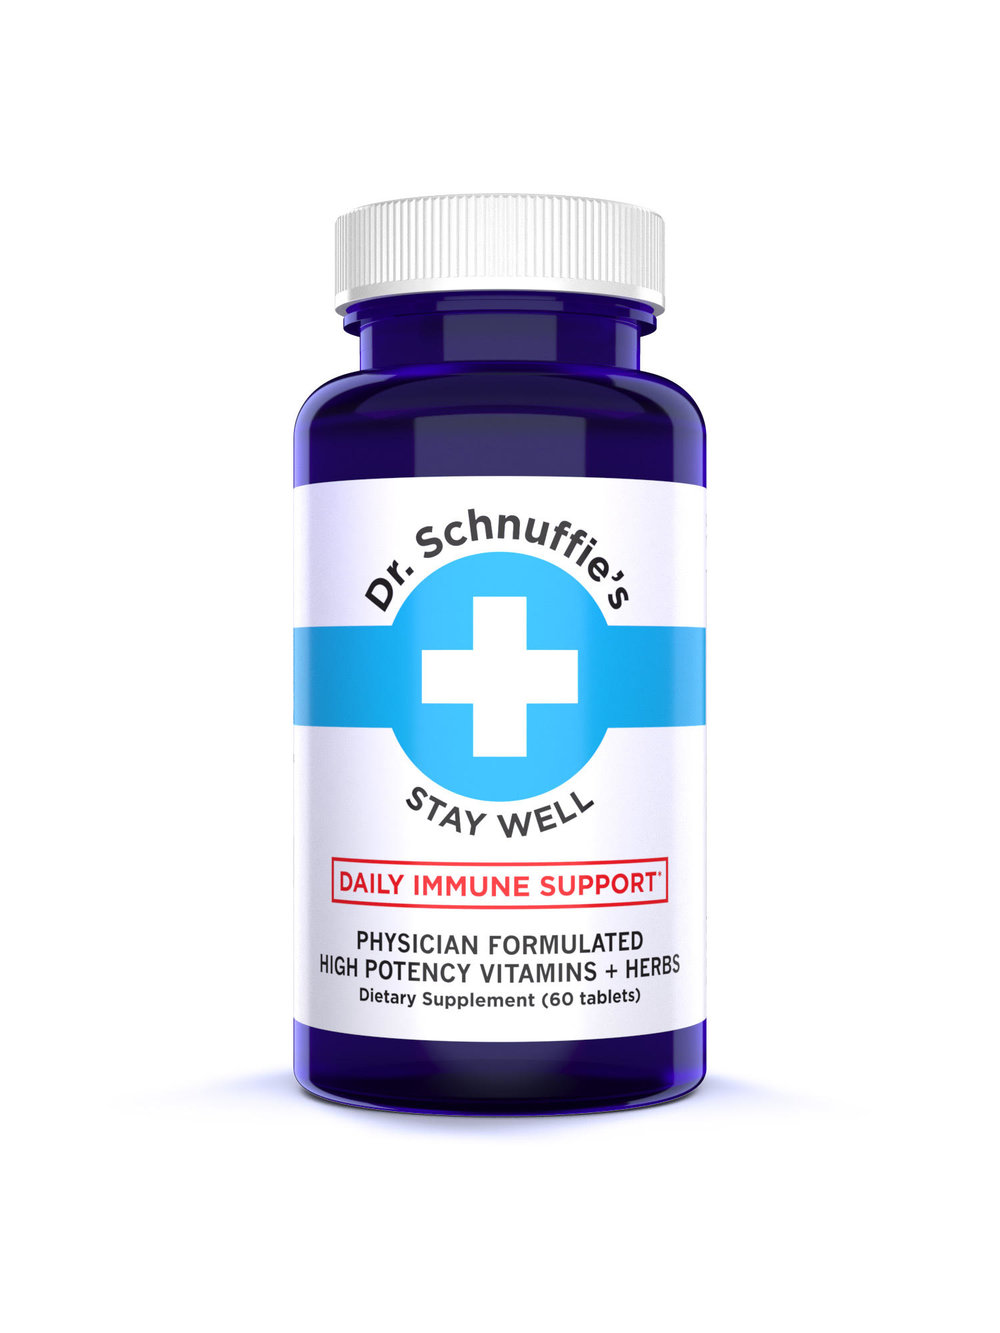 DR Schnuffies Stay Well Wellness Formulas Daily Immune Support Ultra High Potency Cold Flu Natural remedy Prevention Most Popular Top Health Product Vitamin Supplement